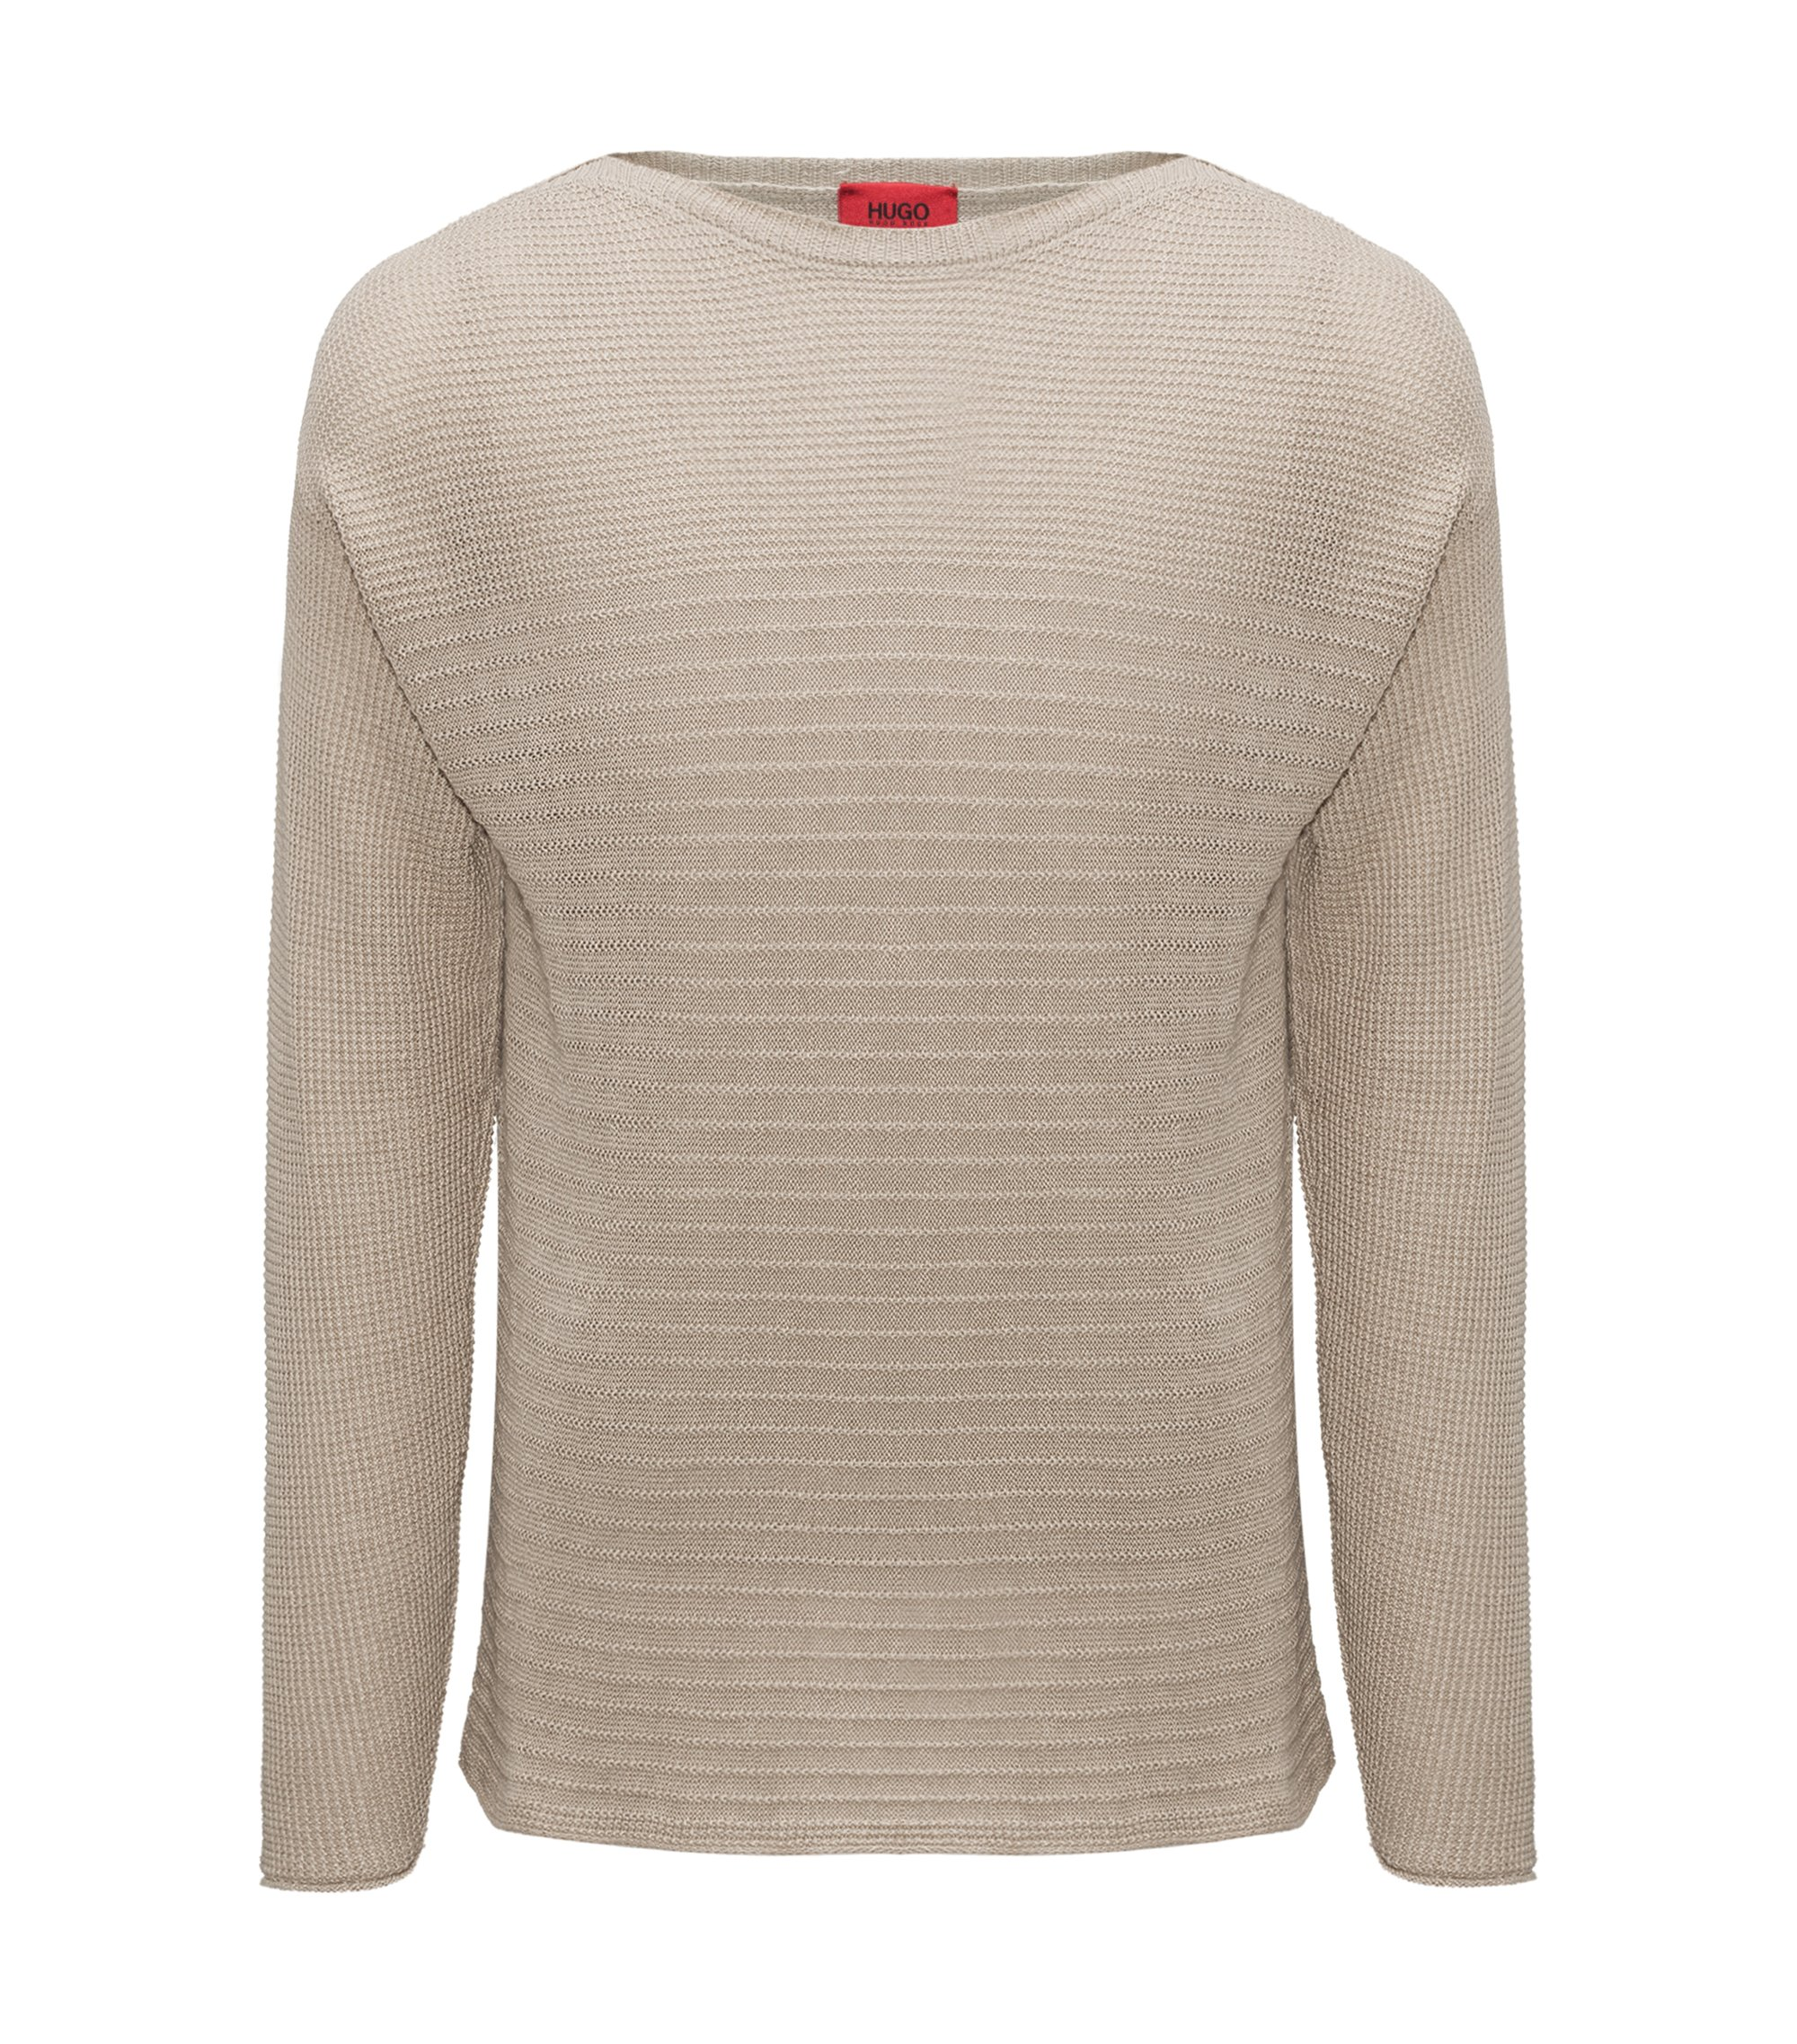 Knitted sweater in linen and cotton, Beige